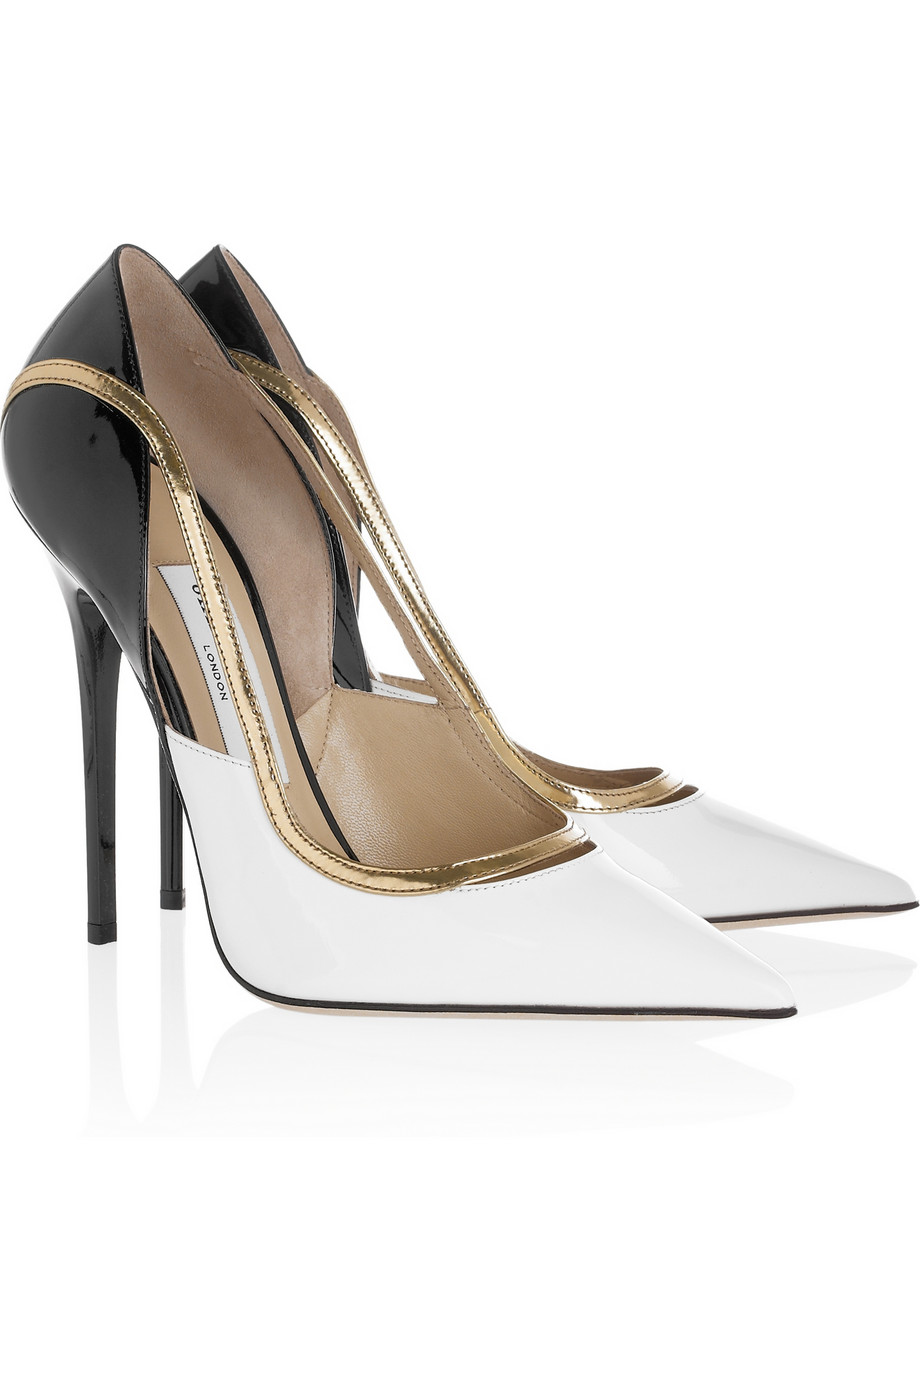 Coupon For Jimmy Choo Pumps - Shoes Jimmy Choo Viper Patentleather Pumps White